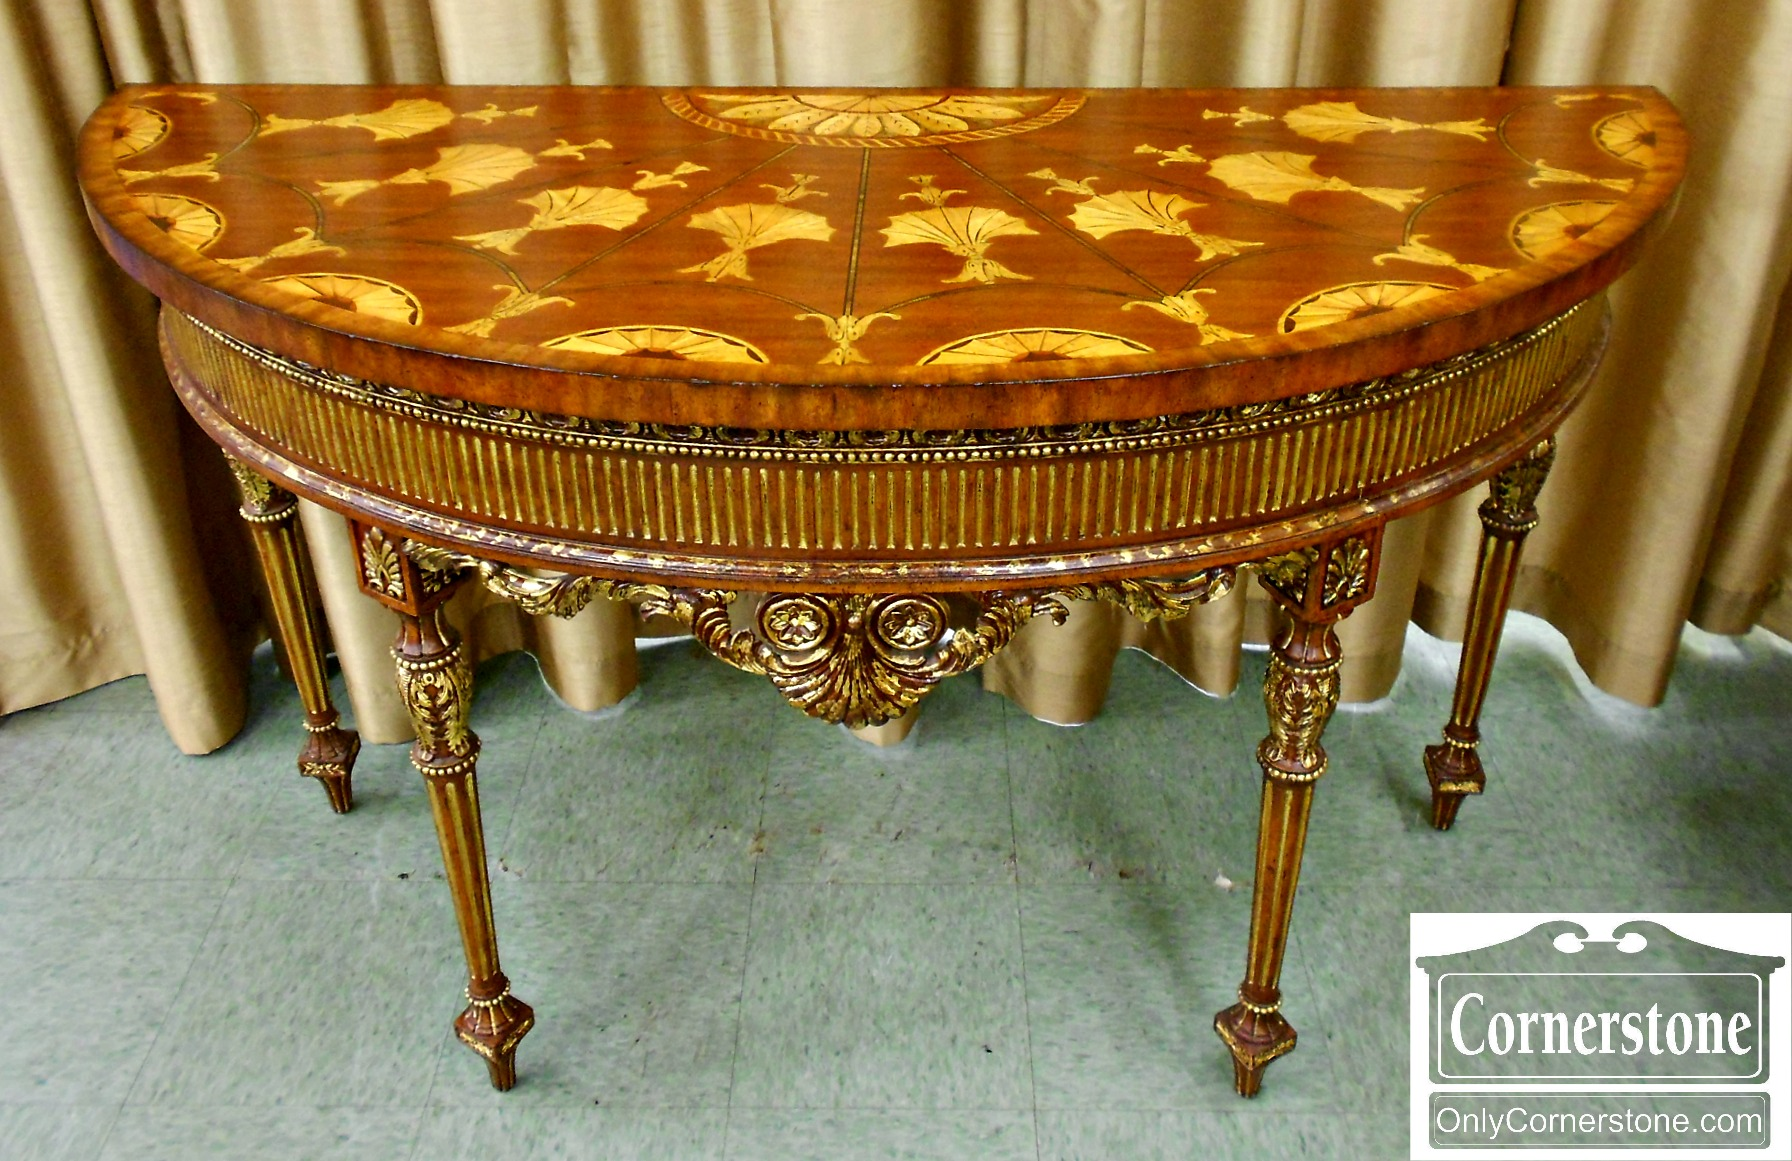 5670-796 Maitland Smith Inlaid Demilune Console